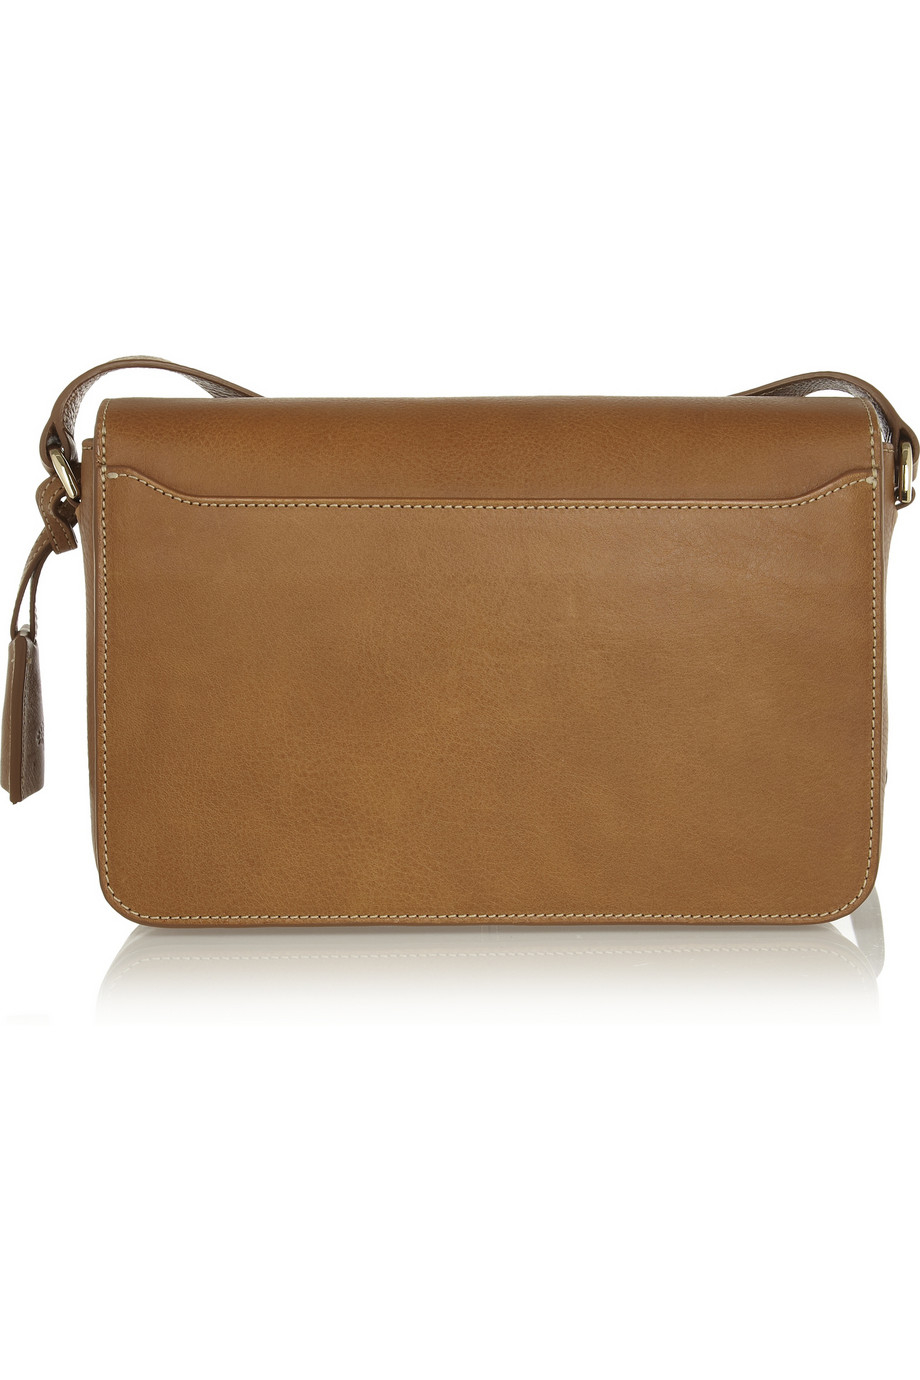 2244ee366e Lyst - Mulberry The Bayswater Leather Shoulder Bag in Brown